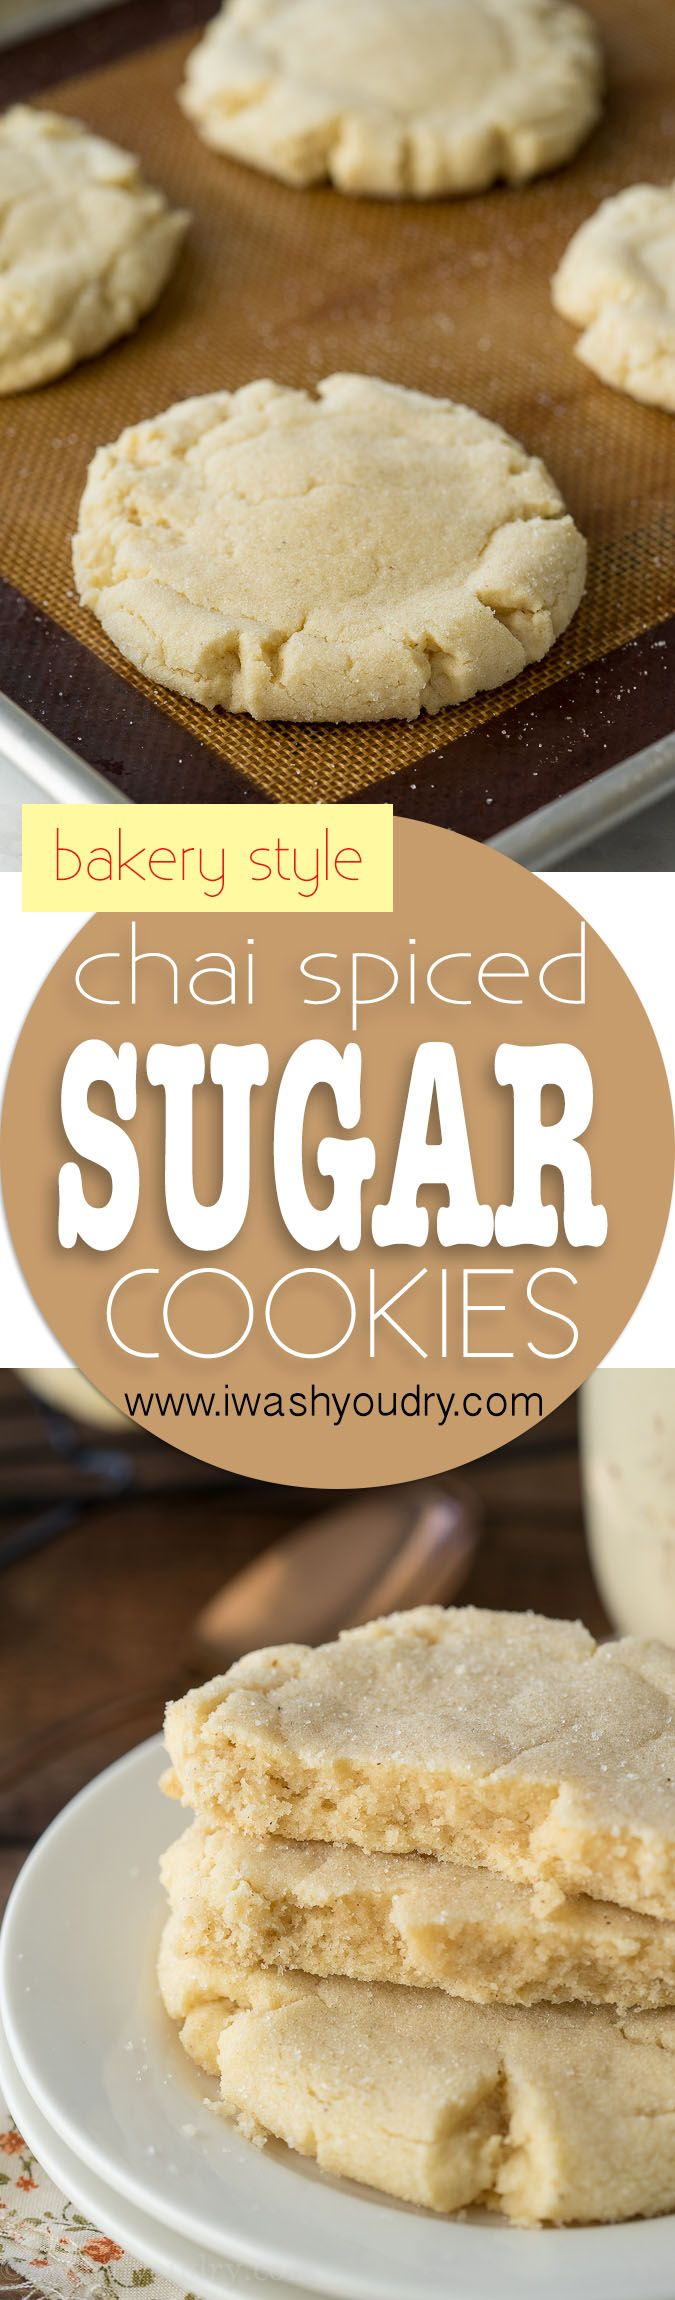 These Chai Spiced Bakery Sugar Cookies are just like Paradise Bakery Sugar Cookies but filled with a hint of chai spices. So soft and buttery tasting!